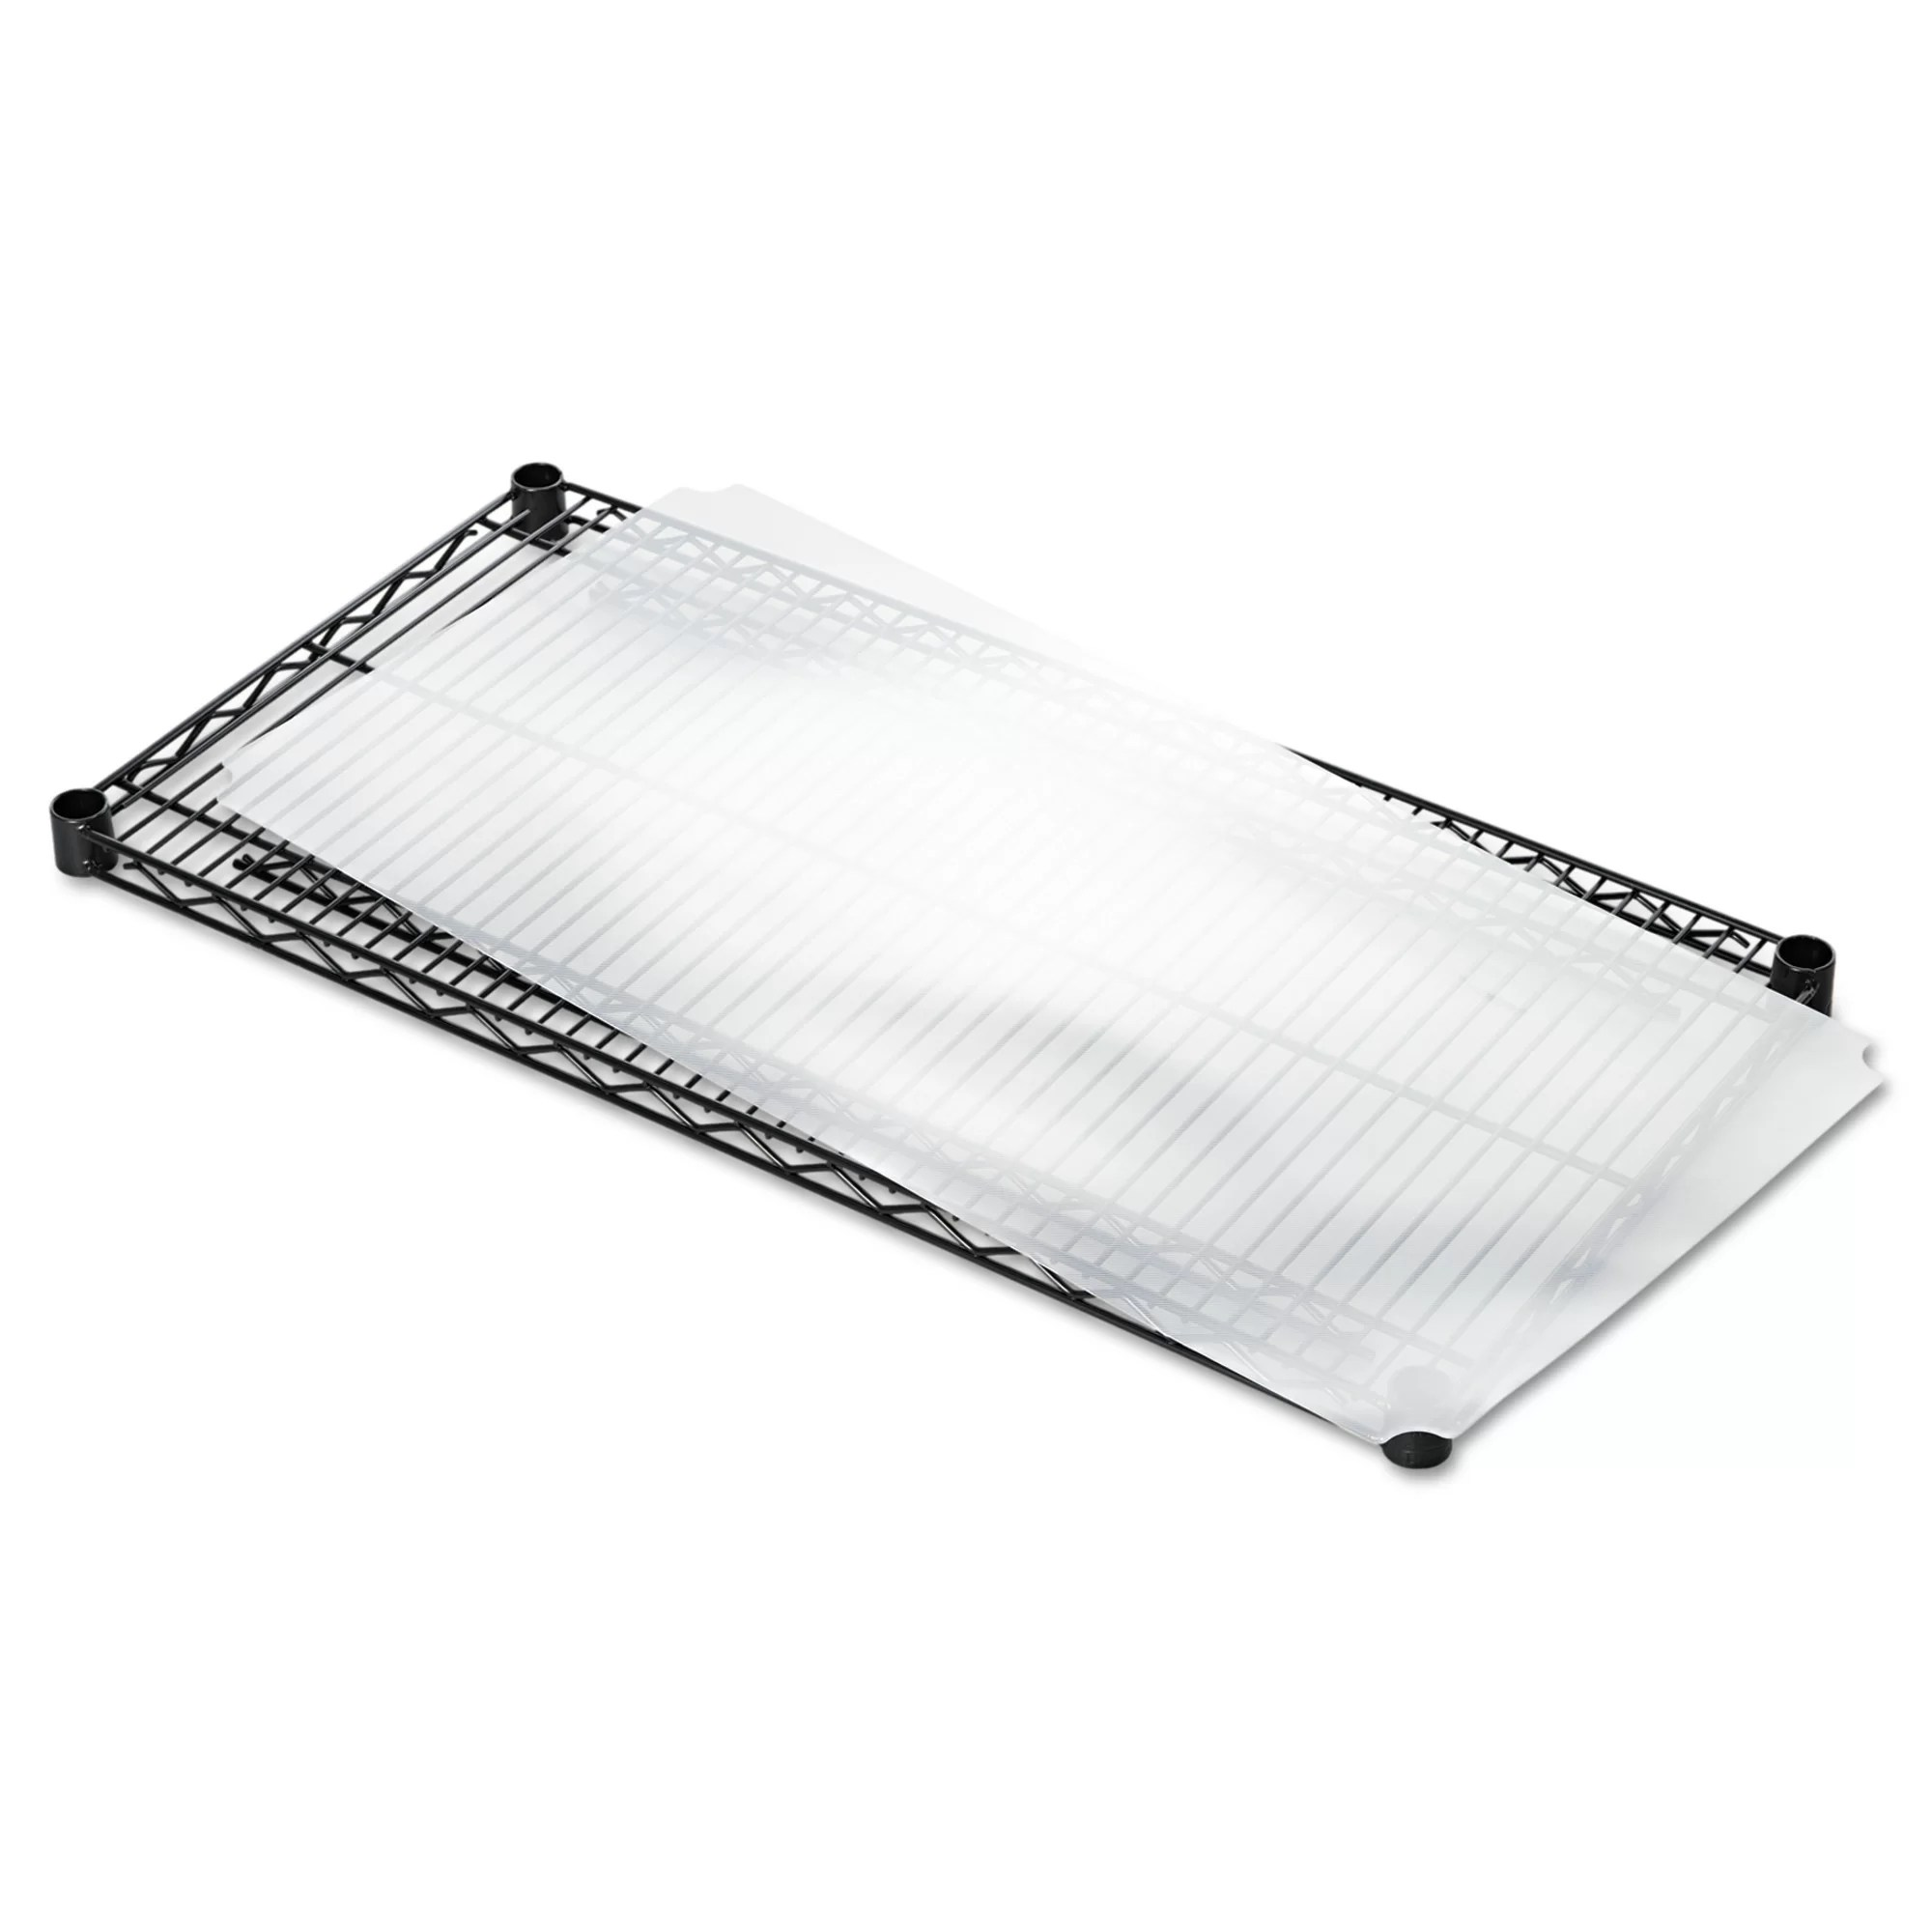 36 w x 18 d shelf liners for wire shelving in clear plastic